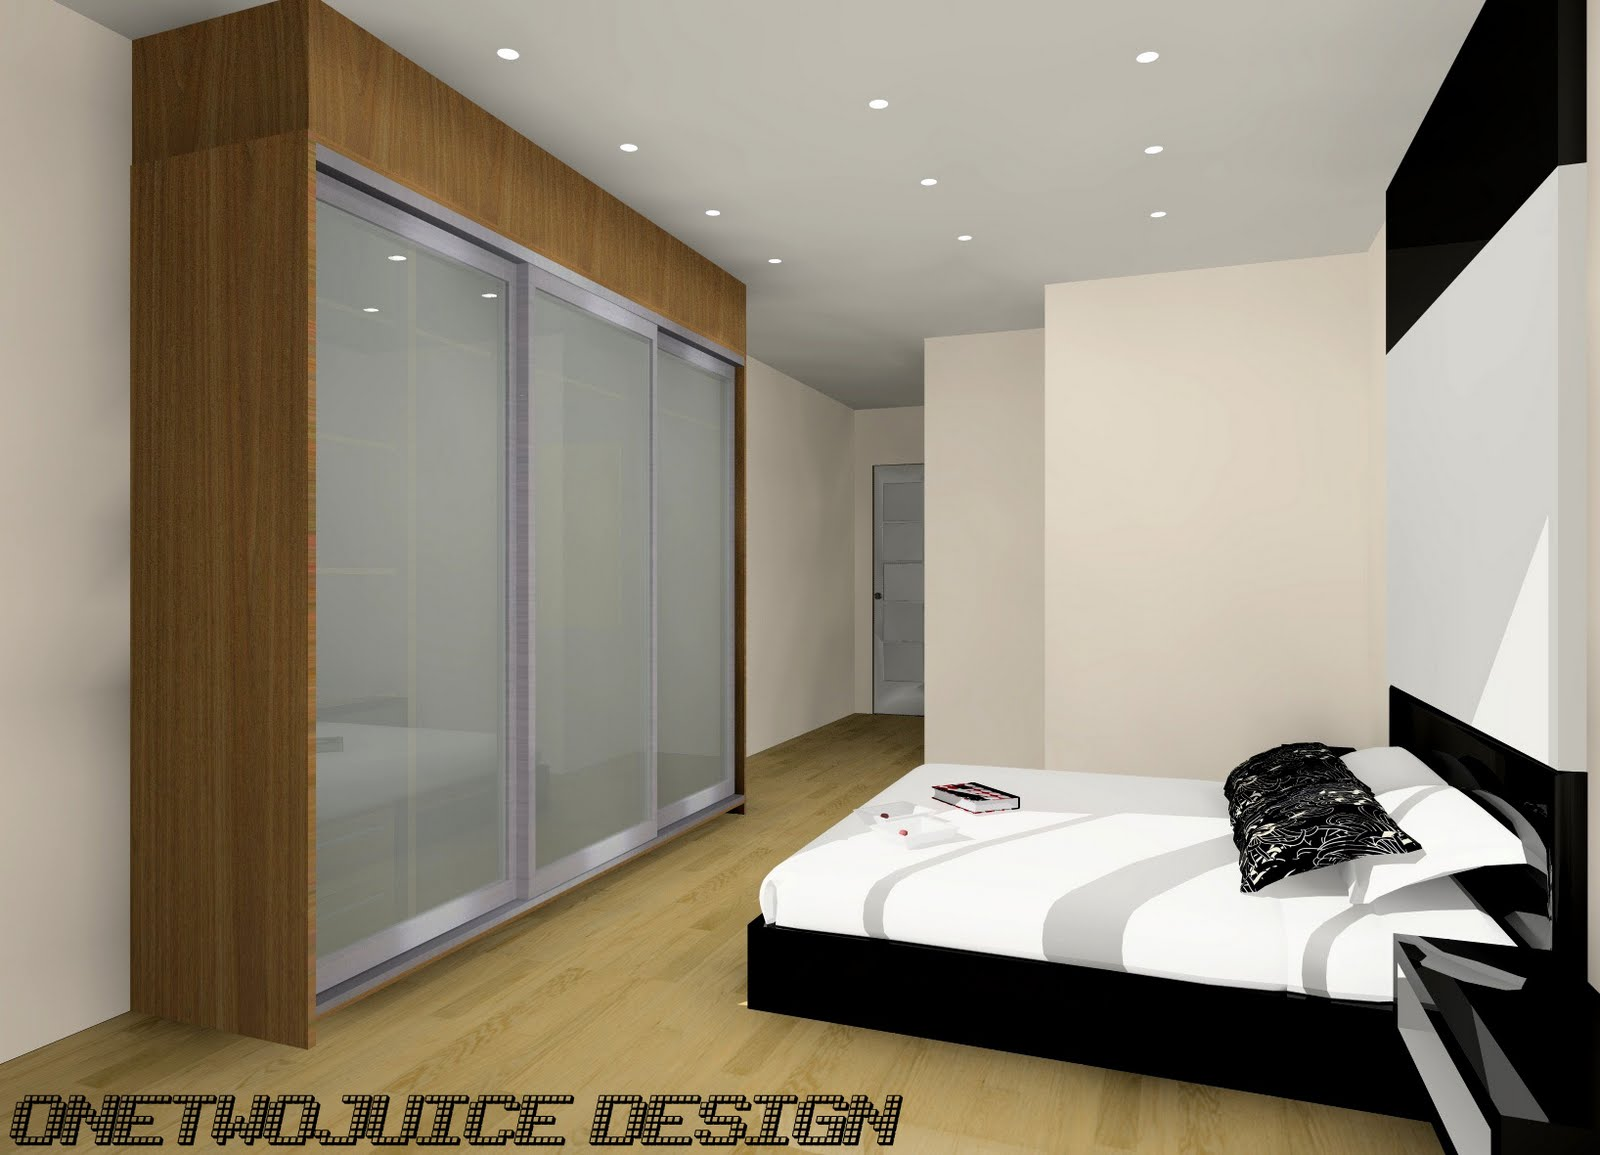 onetwojuice photographix kitchen wardrobe design